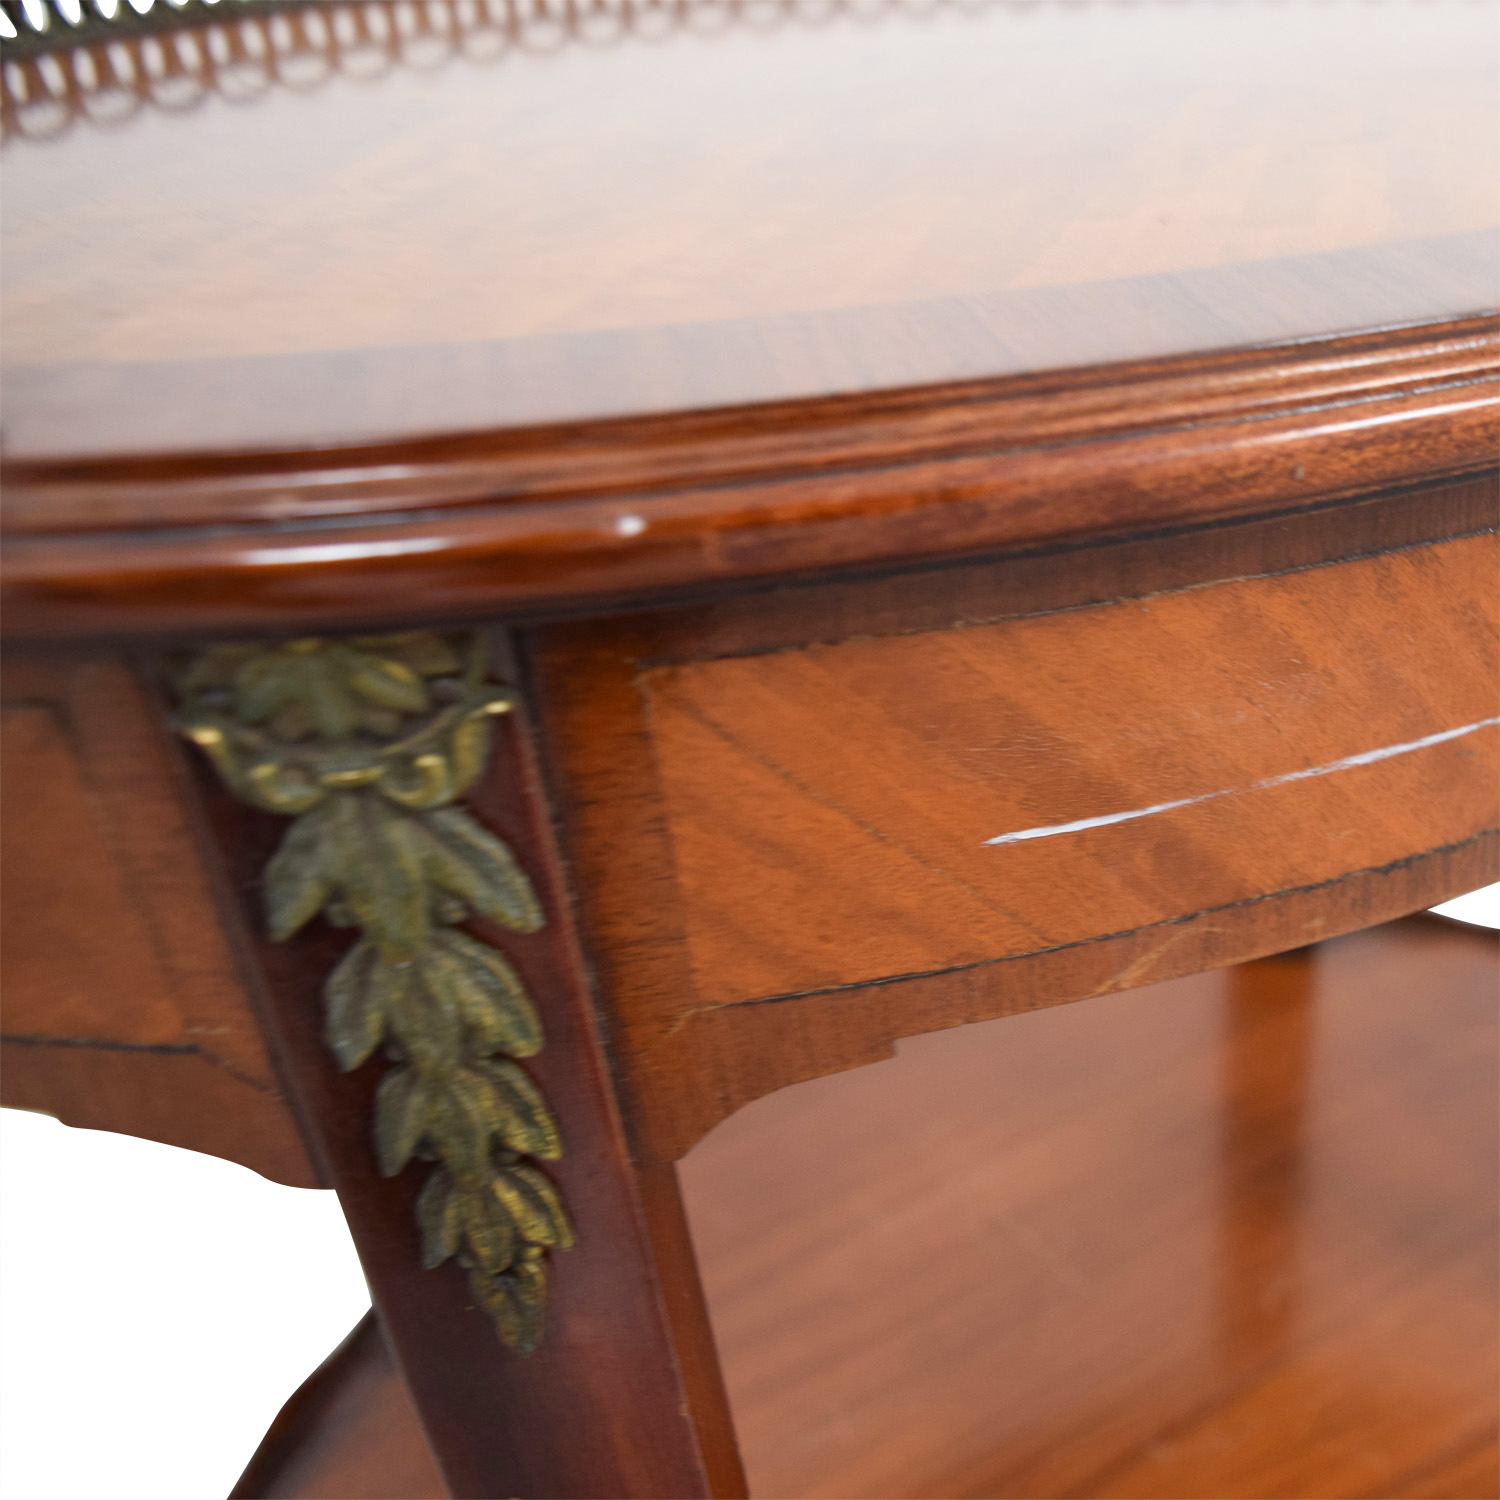 Furniture Masters Furniture Masters Oval End Table with Scalloped and Brass Edges dimensions